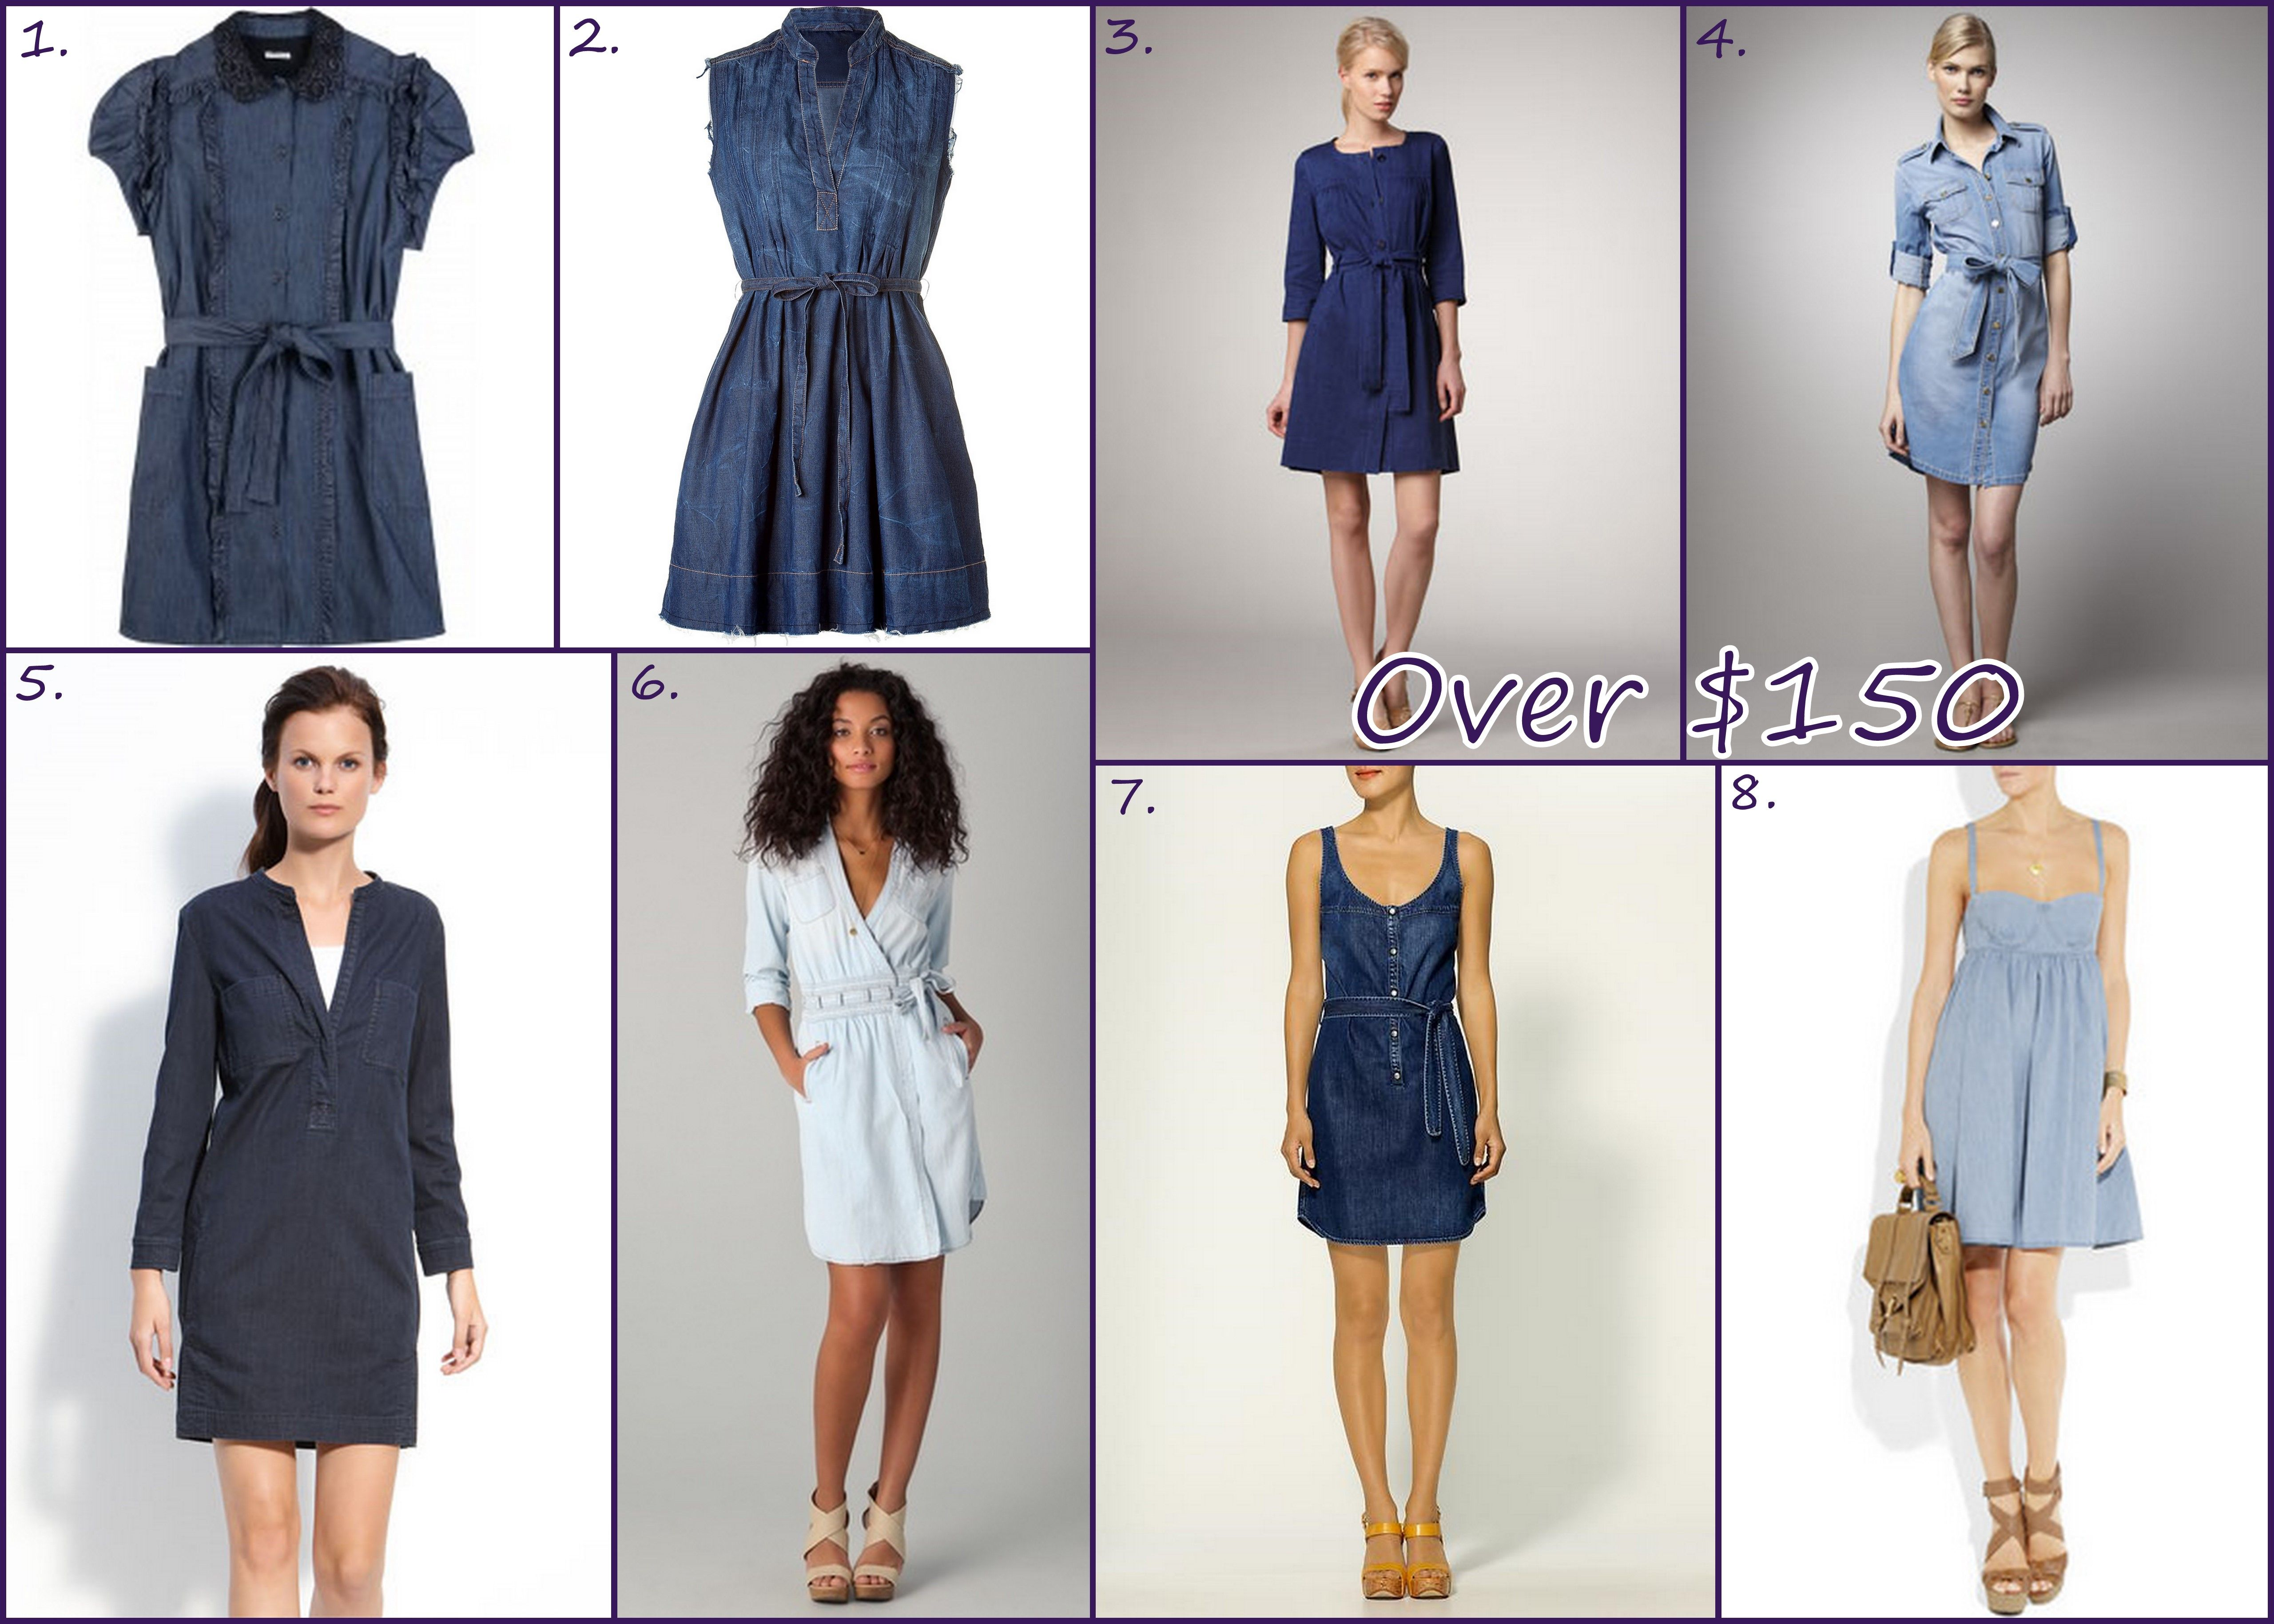 ef4ef8e2ce Denim is HOT and it s not just for jeans anymore. Dresses of all shapes and